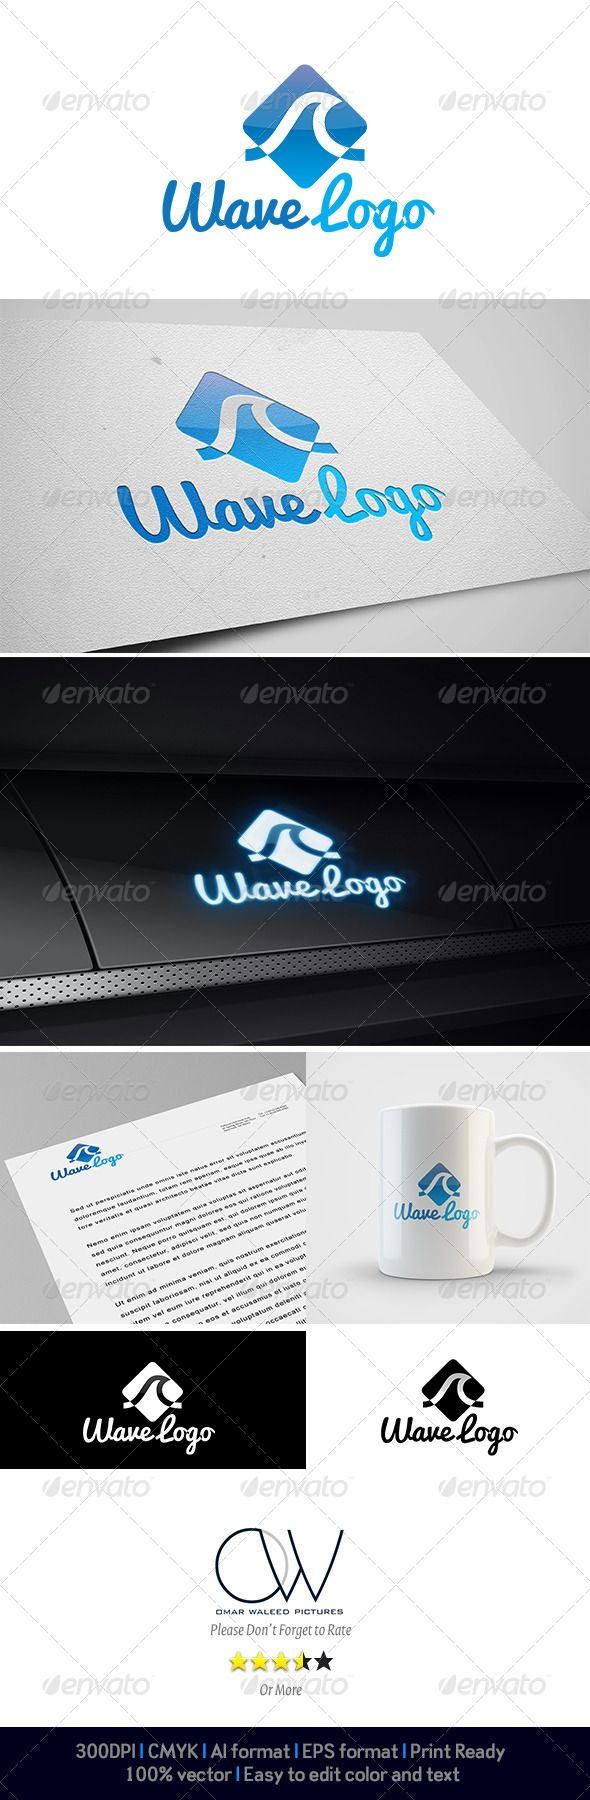 55 best logo templates images on pinterest logo for Best industrial design companies